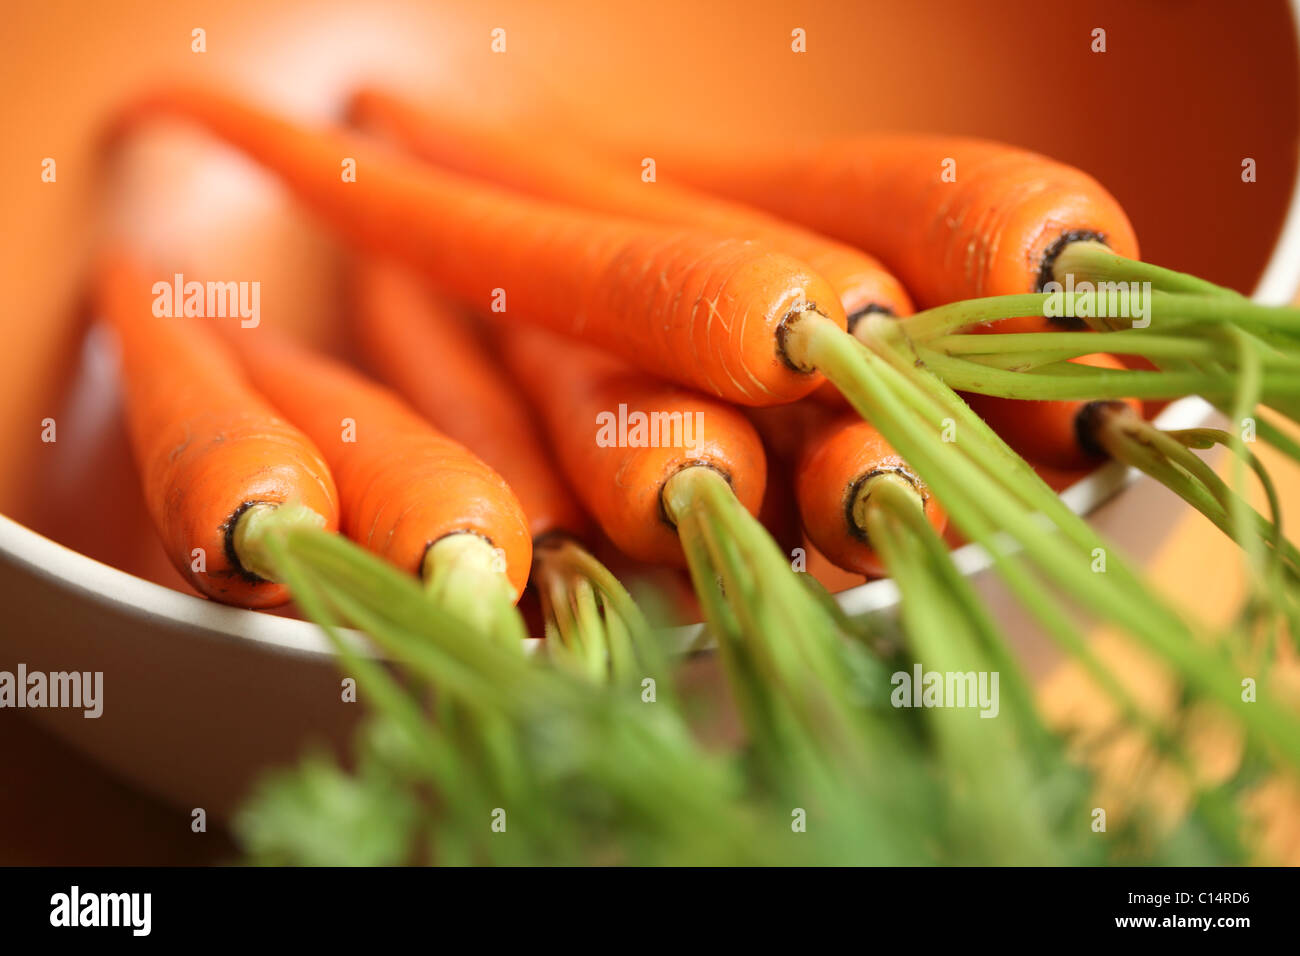 Carrots - Stock Image